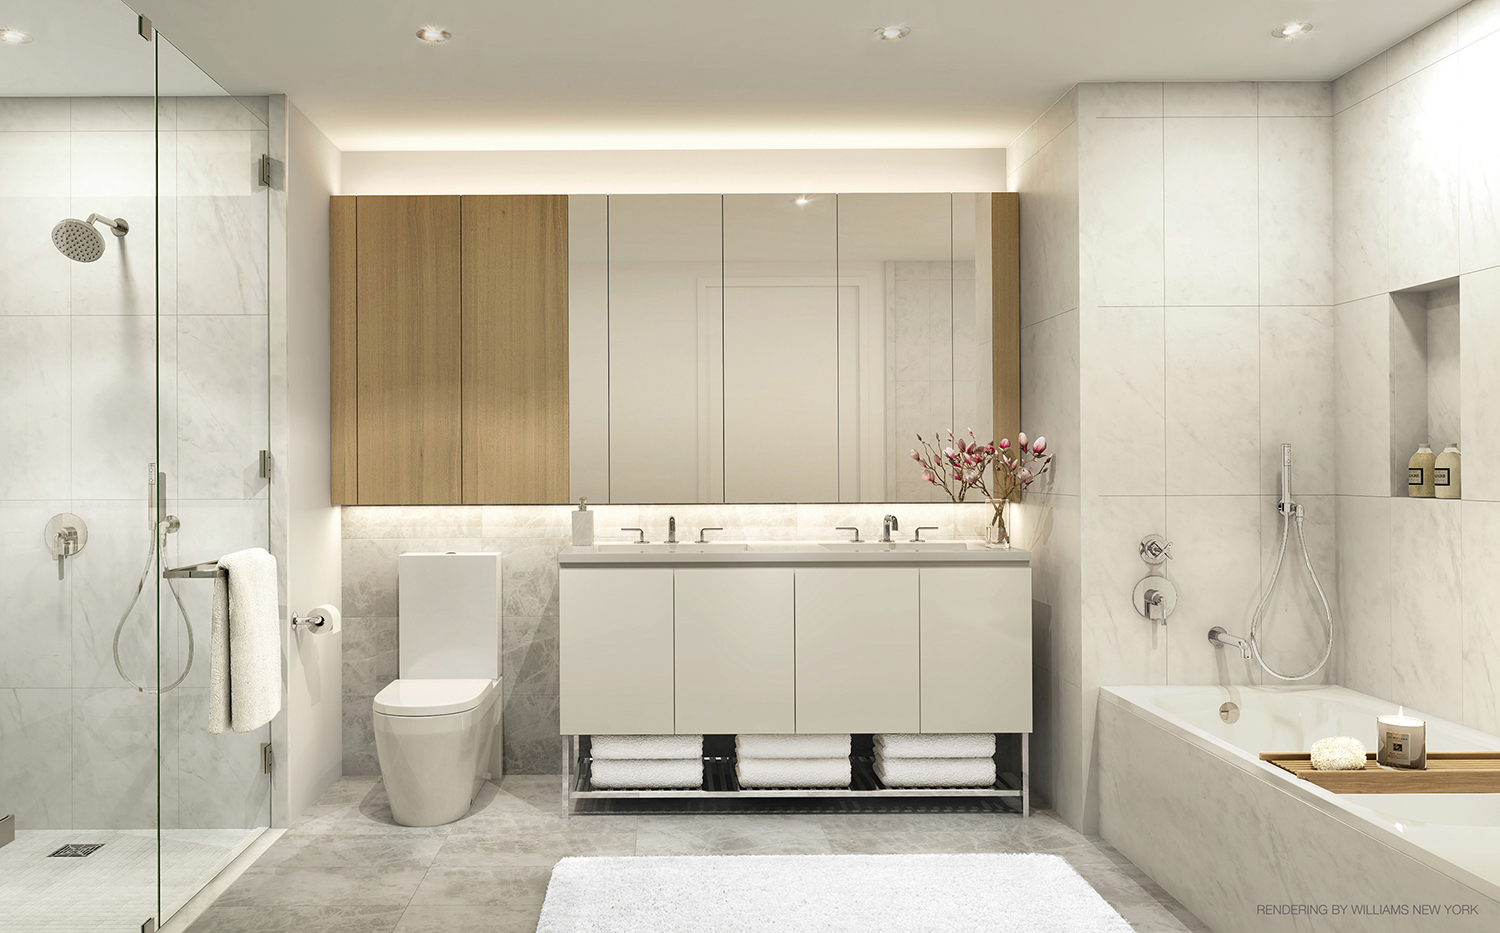 Rendering of a master bathroom at 196 Orchard Street. Credit: Williams New York